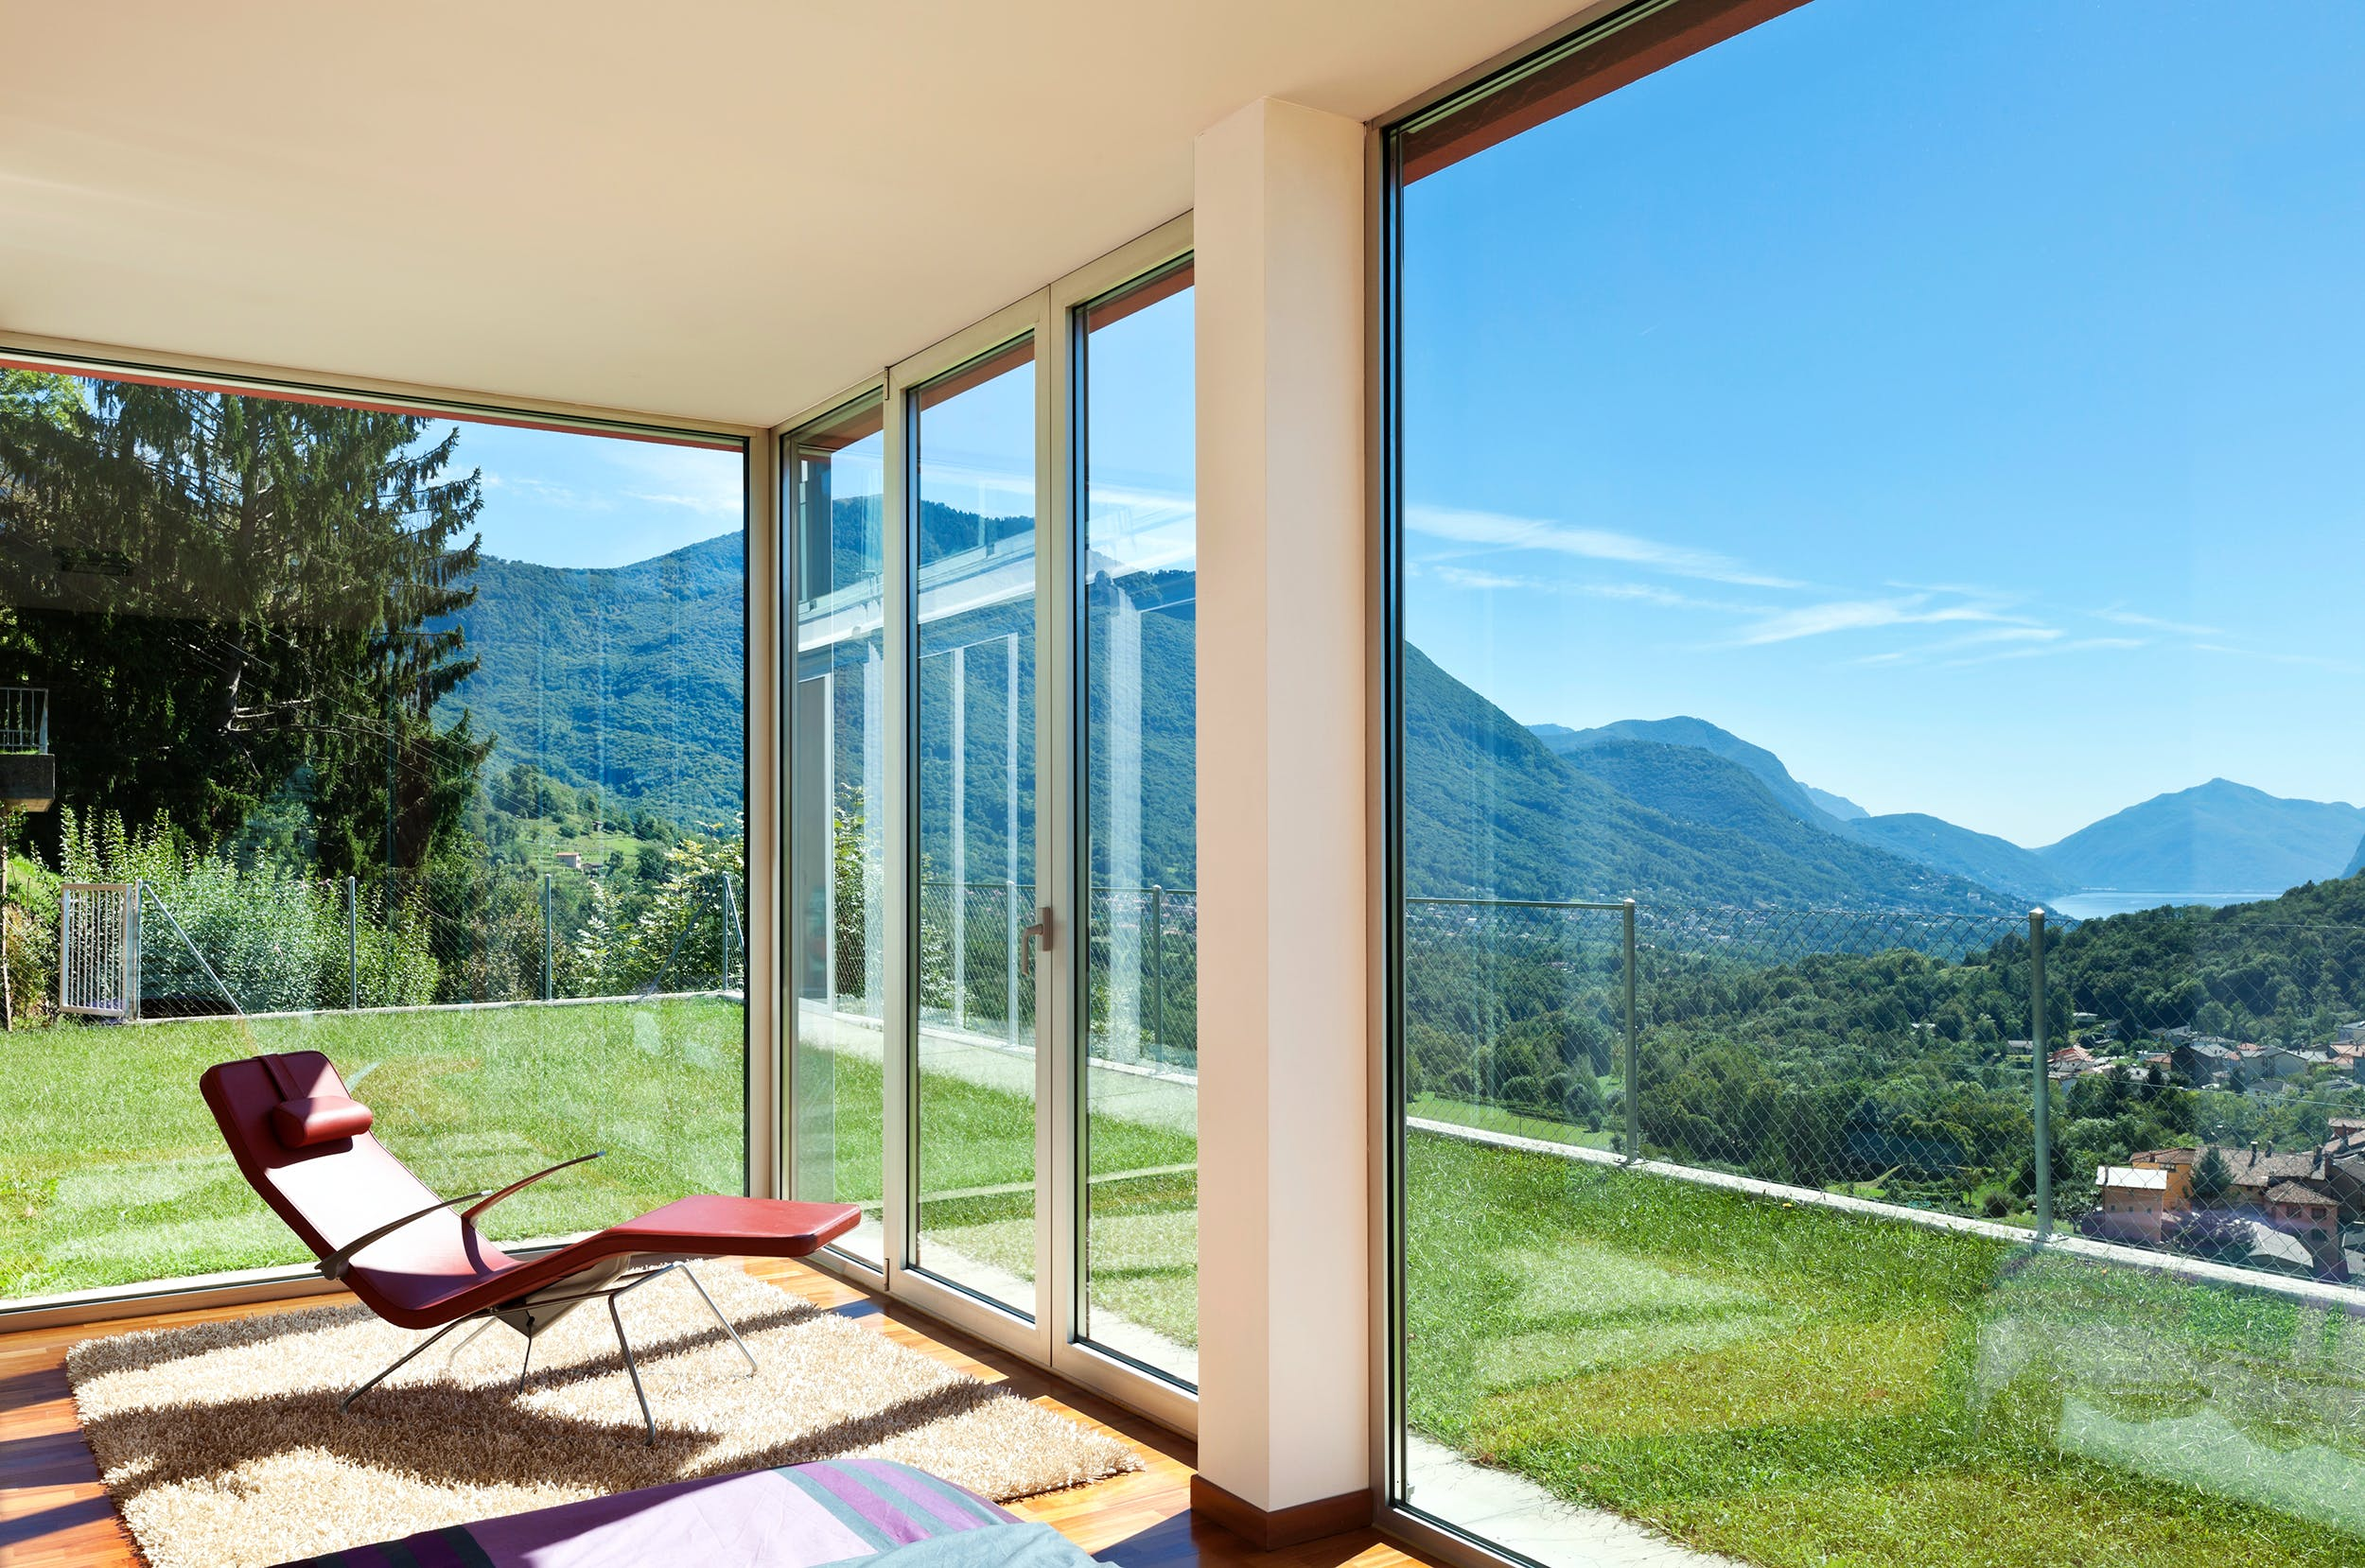 Replace windows with energy efficient glass - Mesa AZ